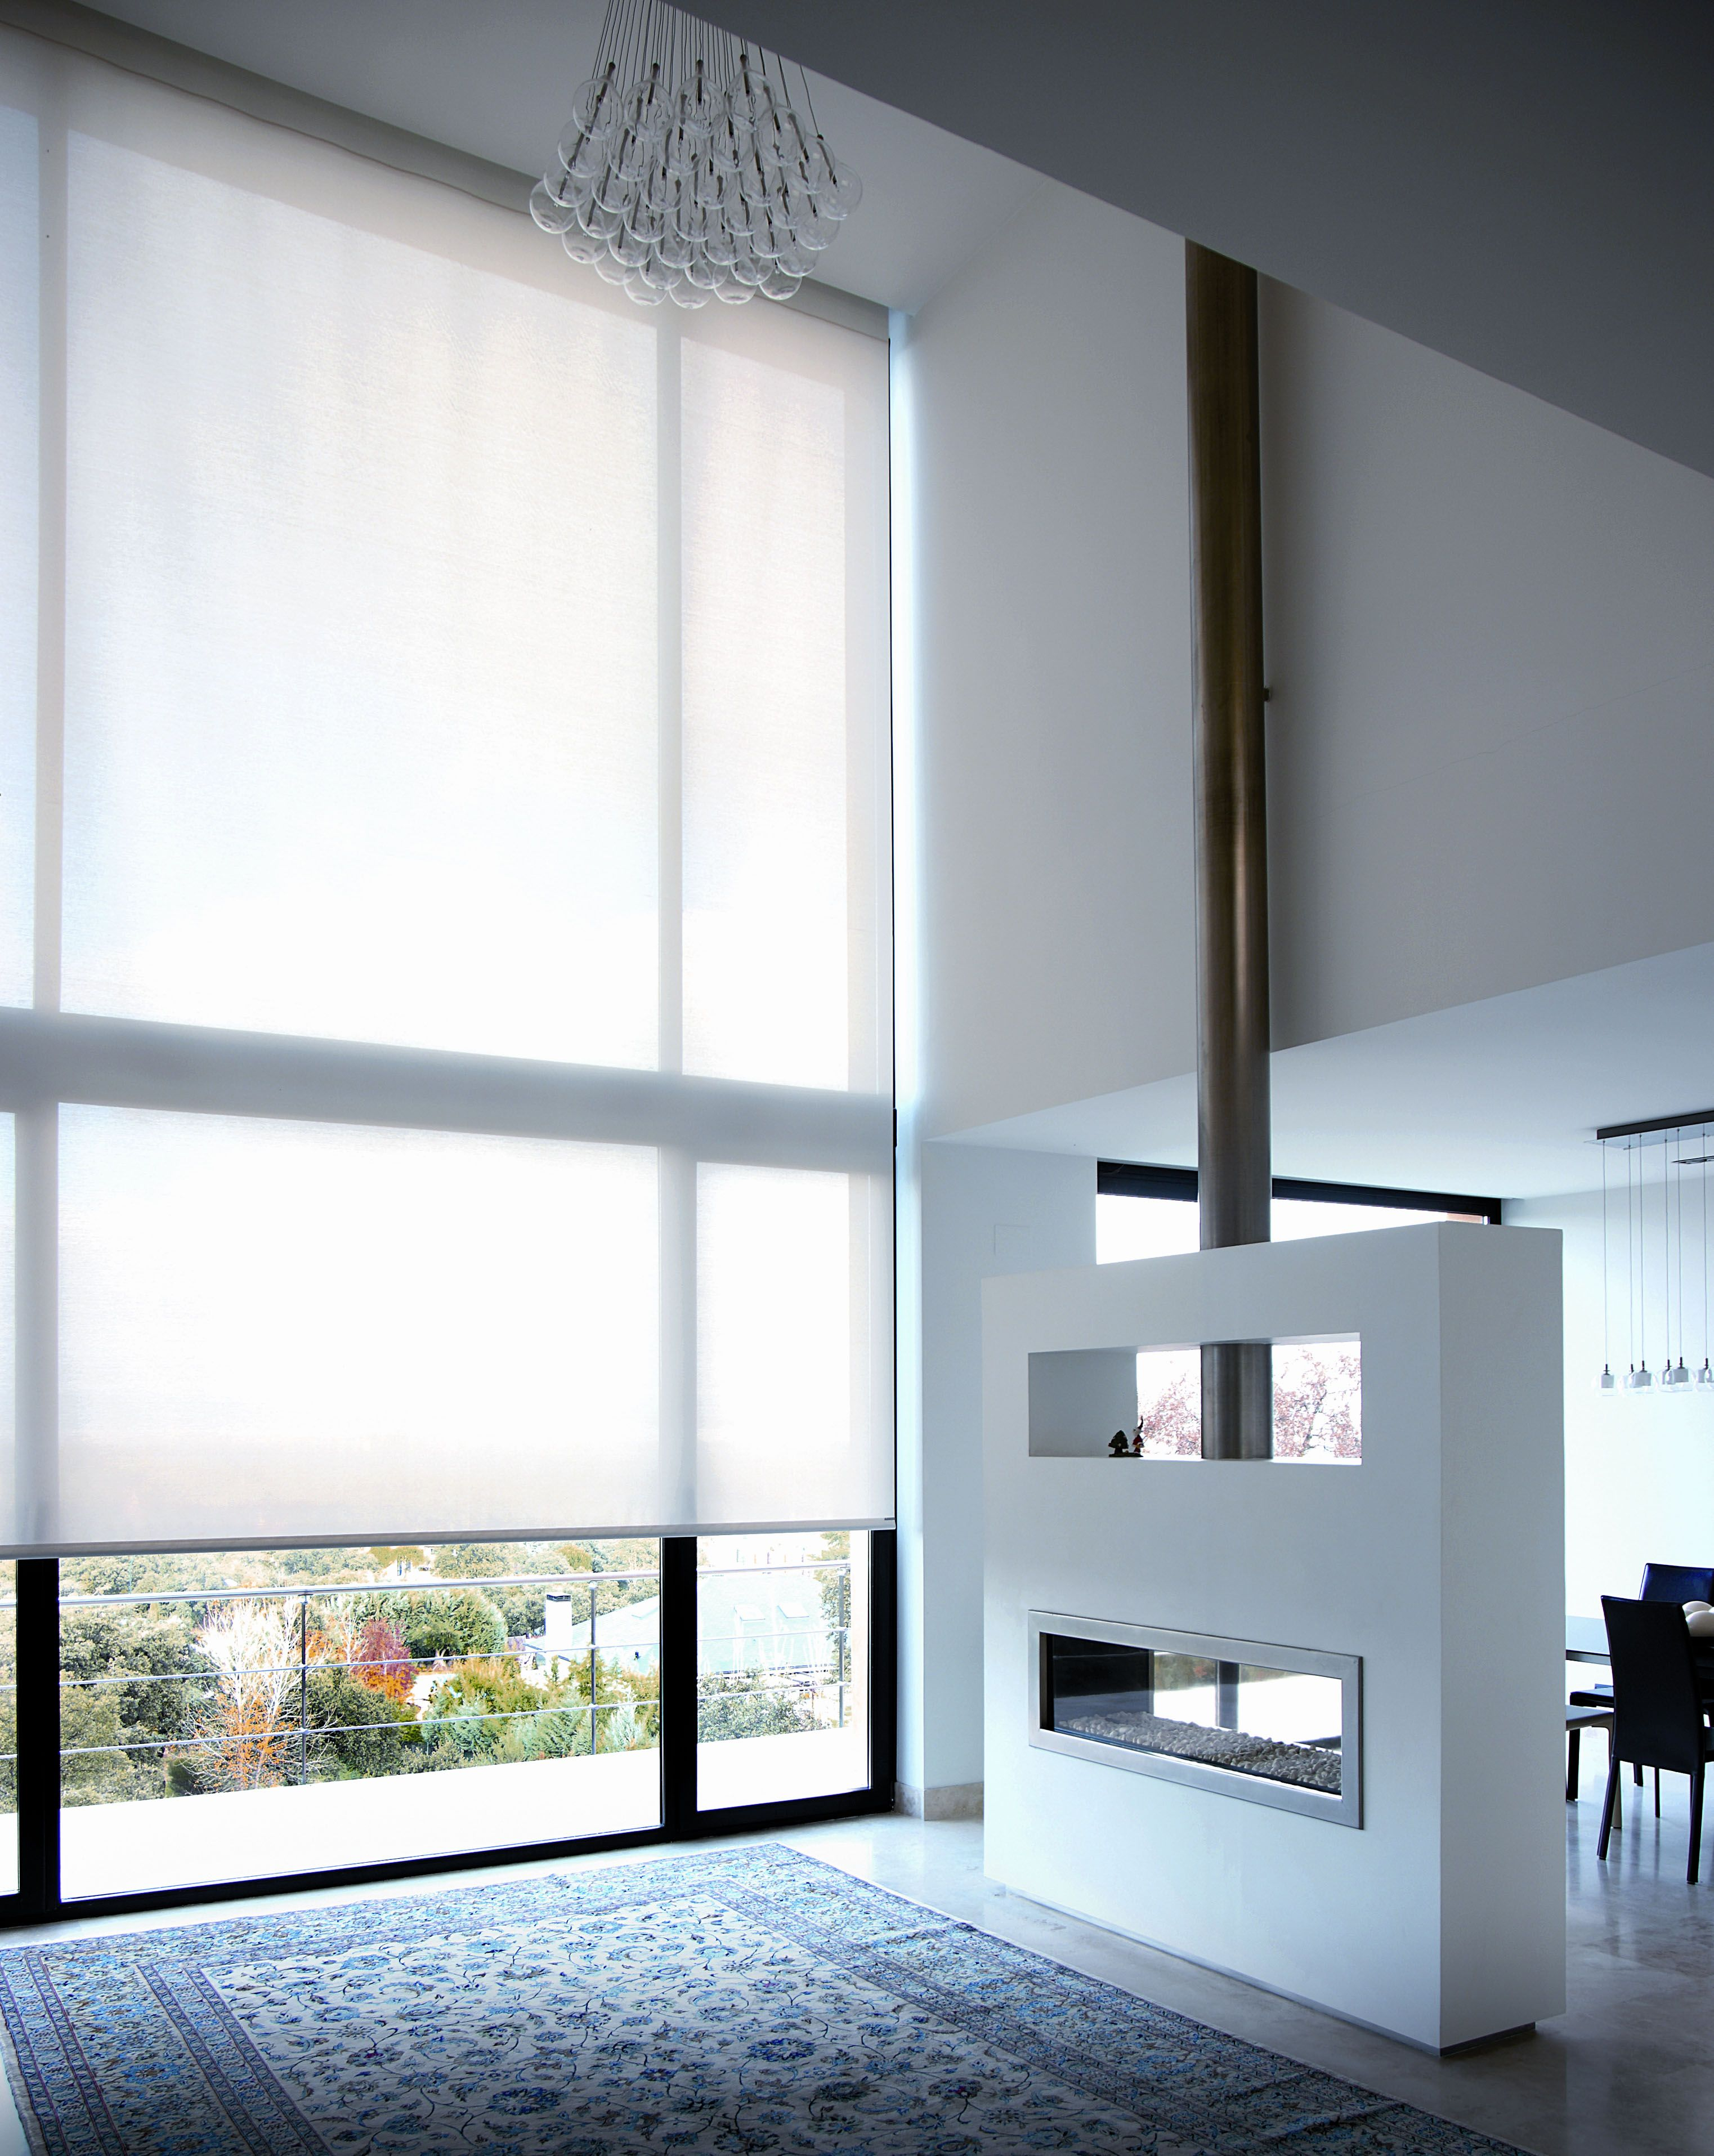 Window coverings types  prodotto  rulli  roller shade options  pinterest  window window